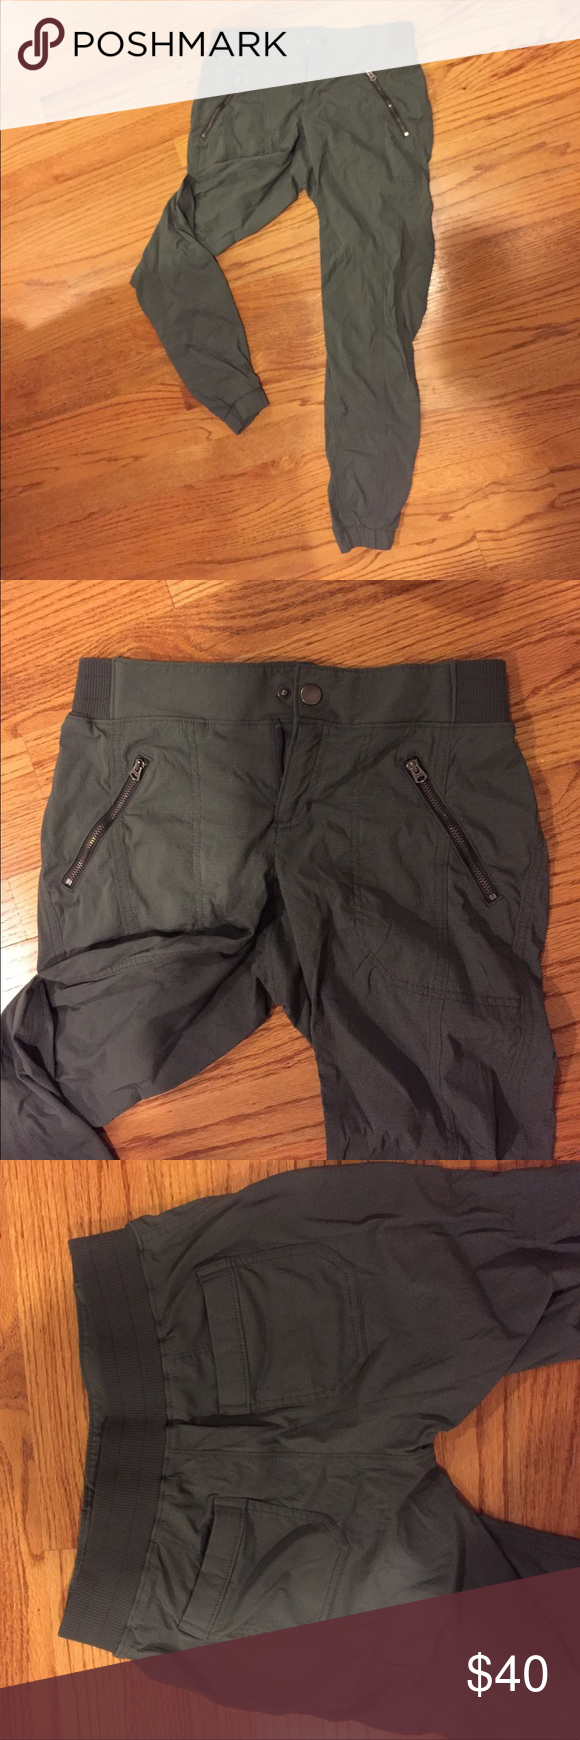 Army green athleta joggers Super comfy and breathable army green joggers. Used but in great condition, just too small on me. Nylon material Athleta Pants Track Pants & Joggers